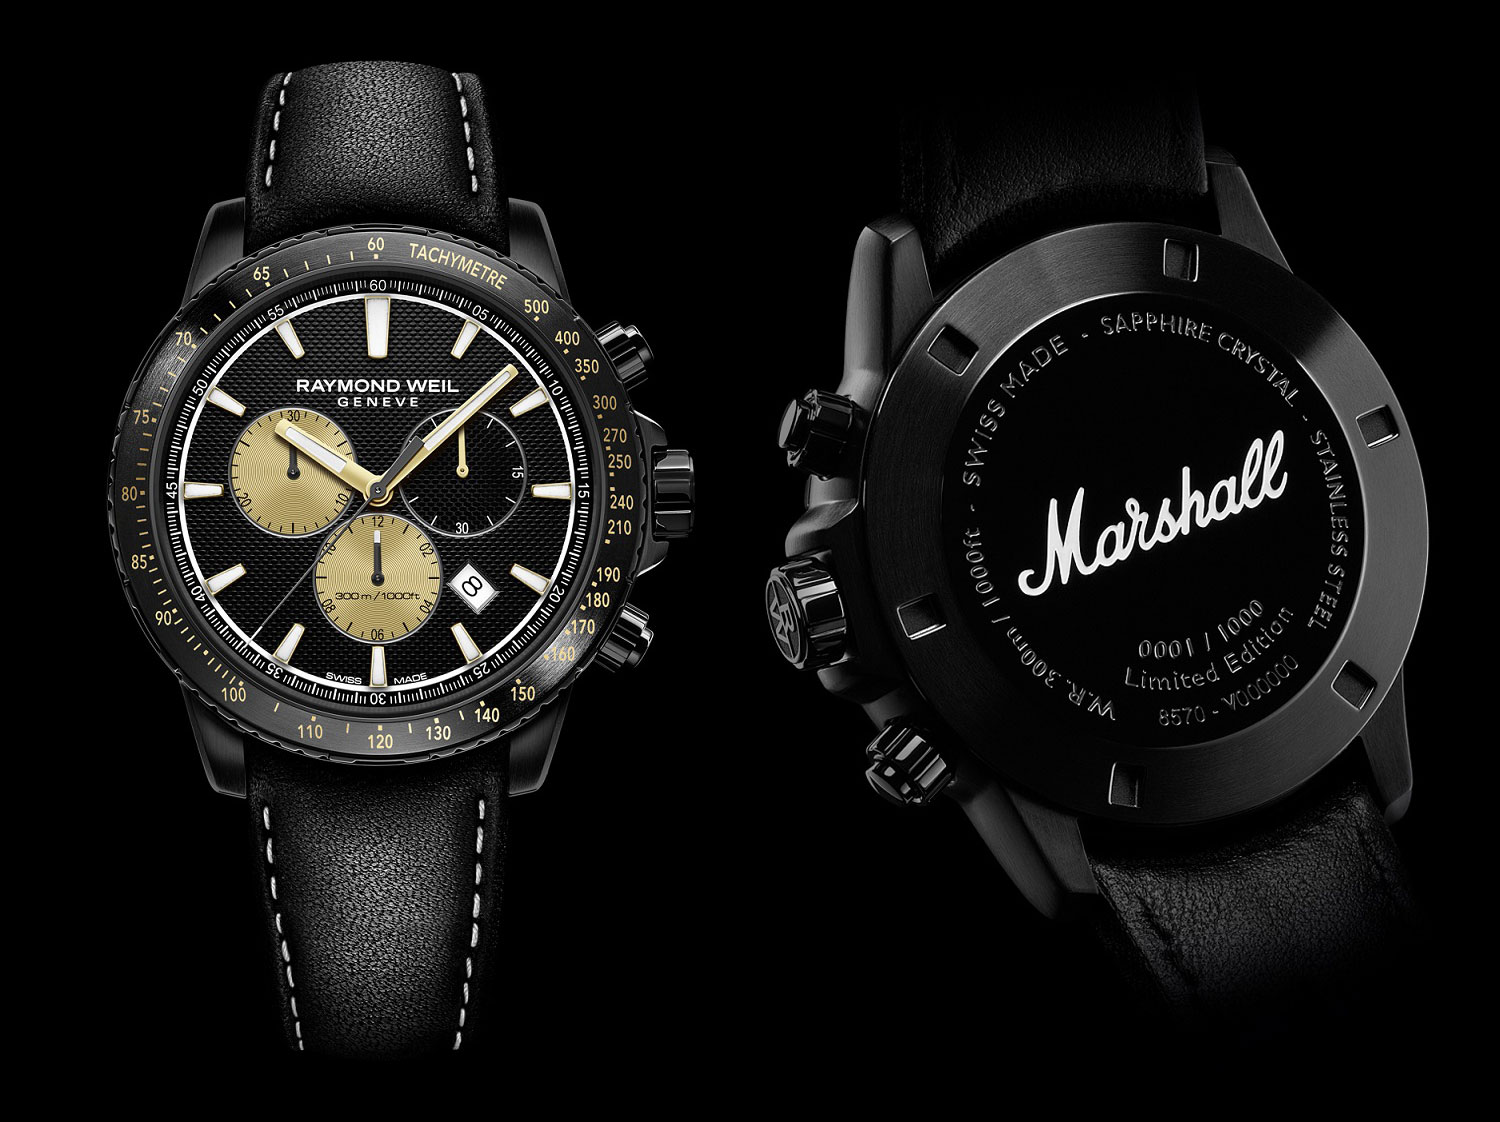 Raymond Weil Marshall Amplification Limited Edition